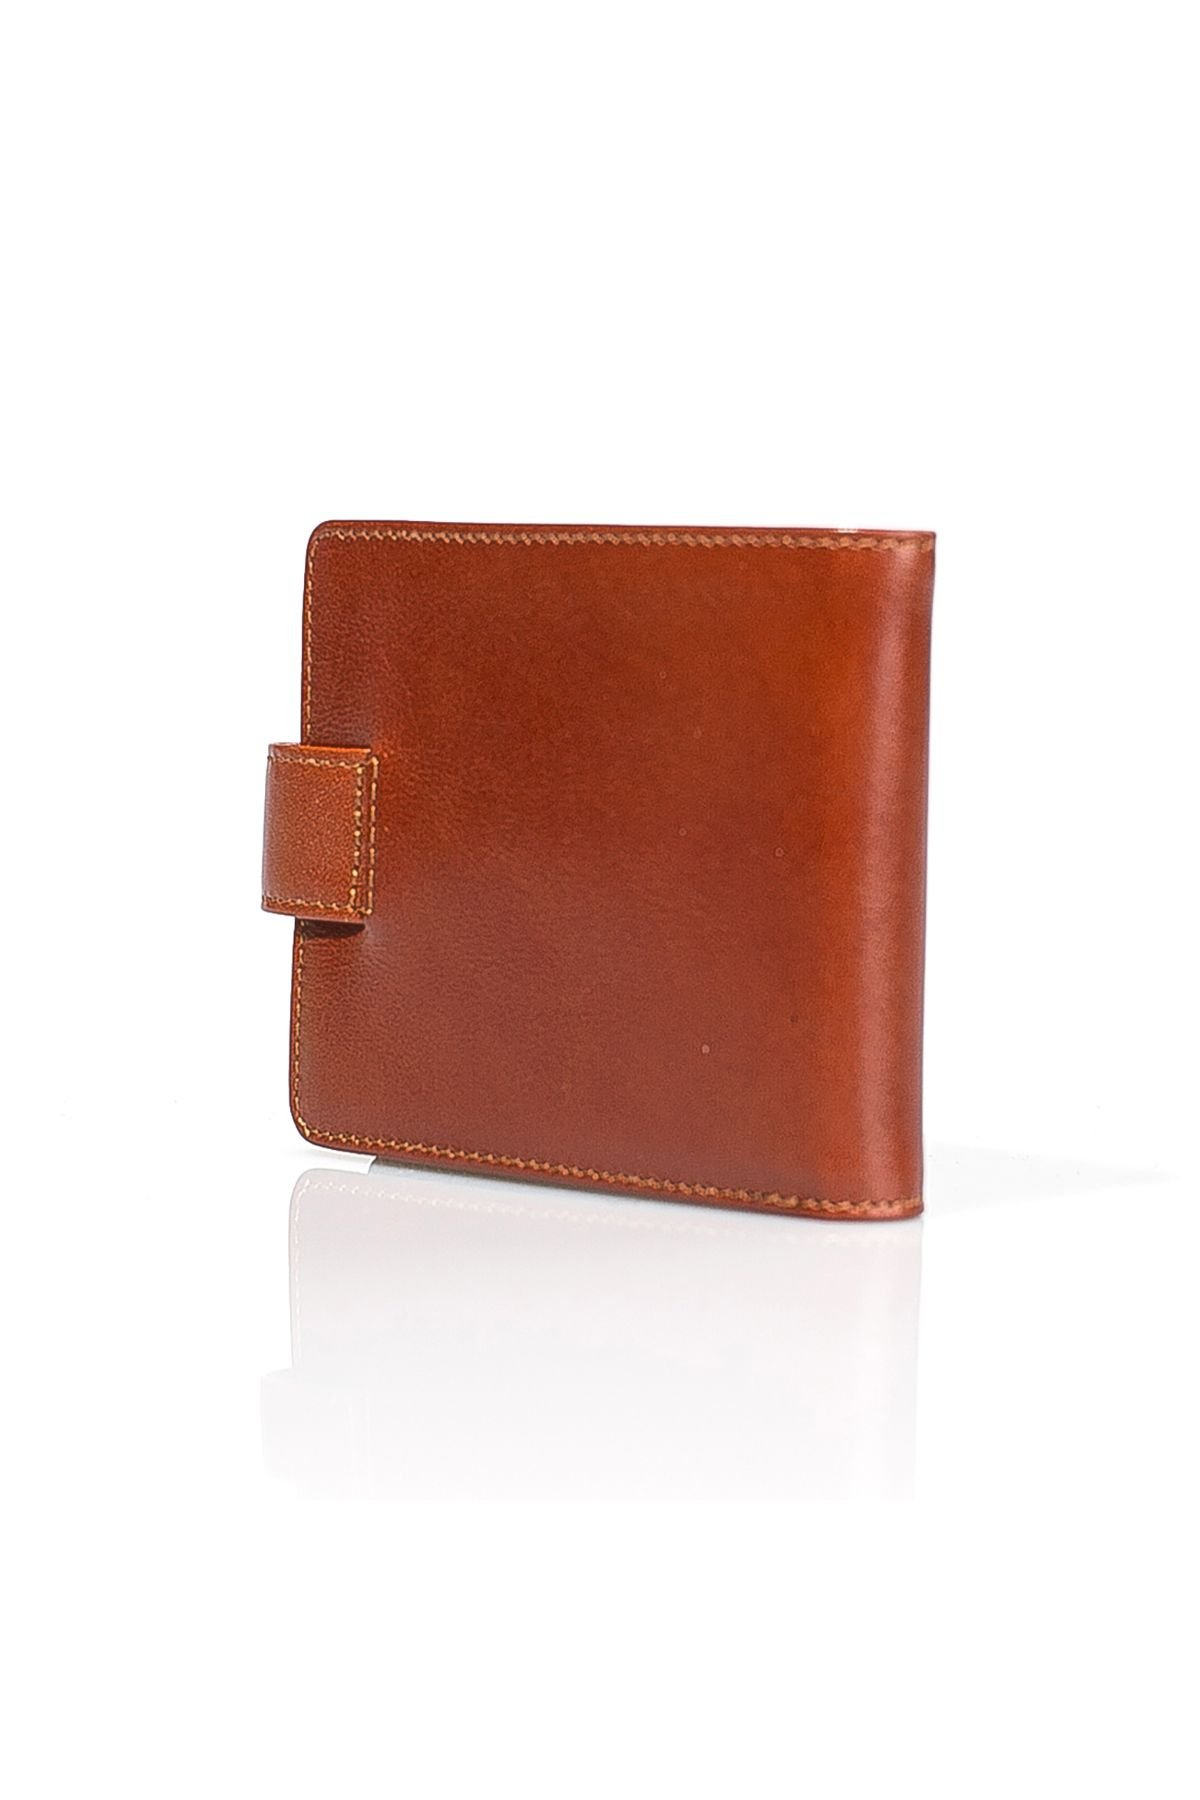 White Rabbit Leather Wallet Brown